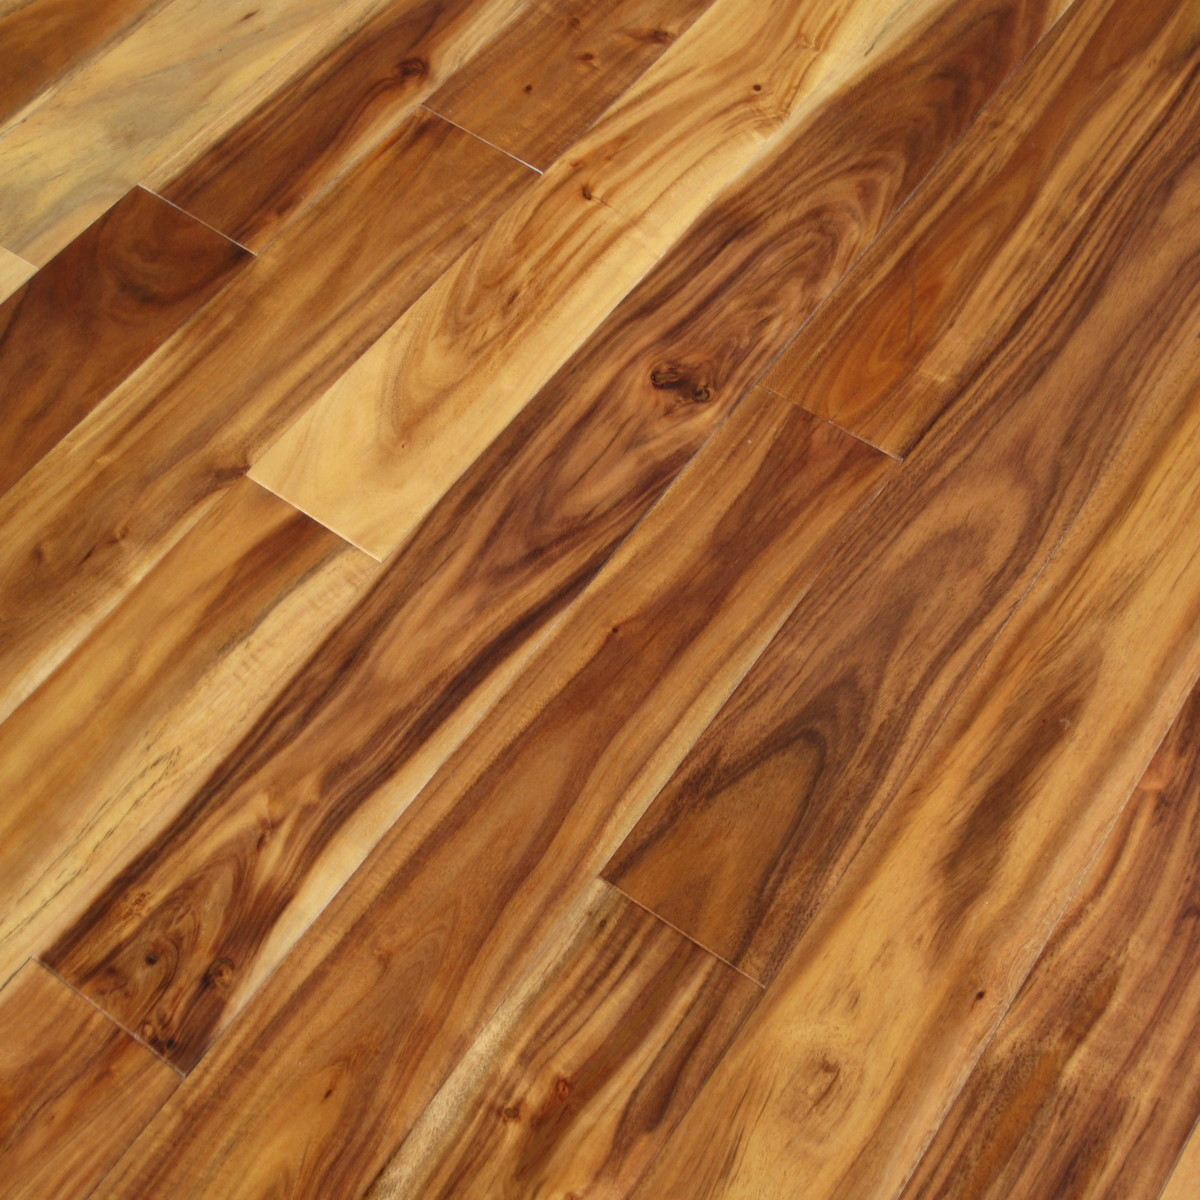 Acacia natural plank hardwood flooring unique wood floors for Hardwood plank flooring